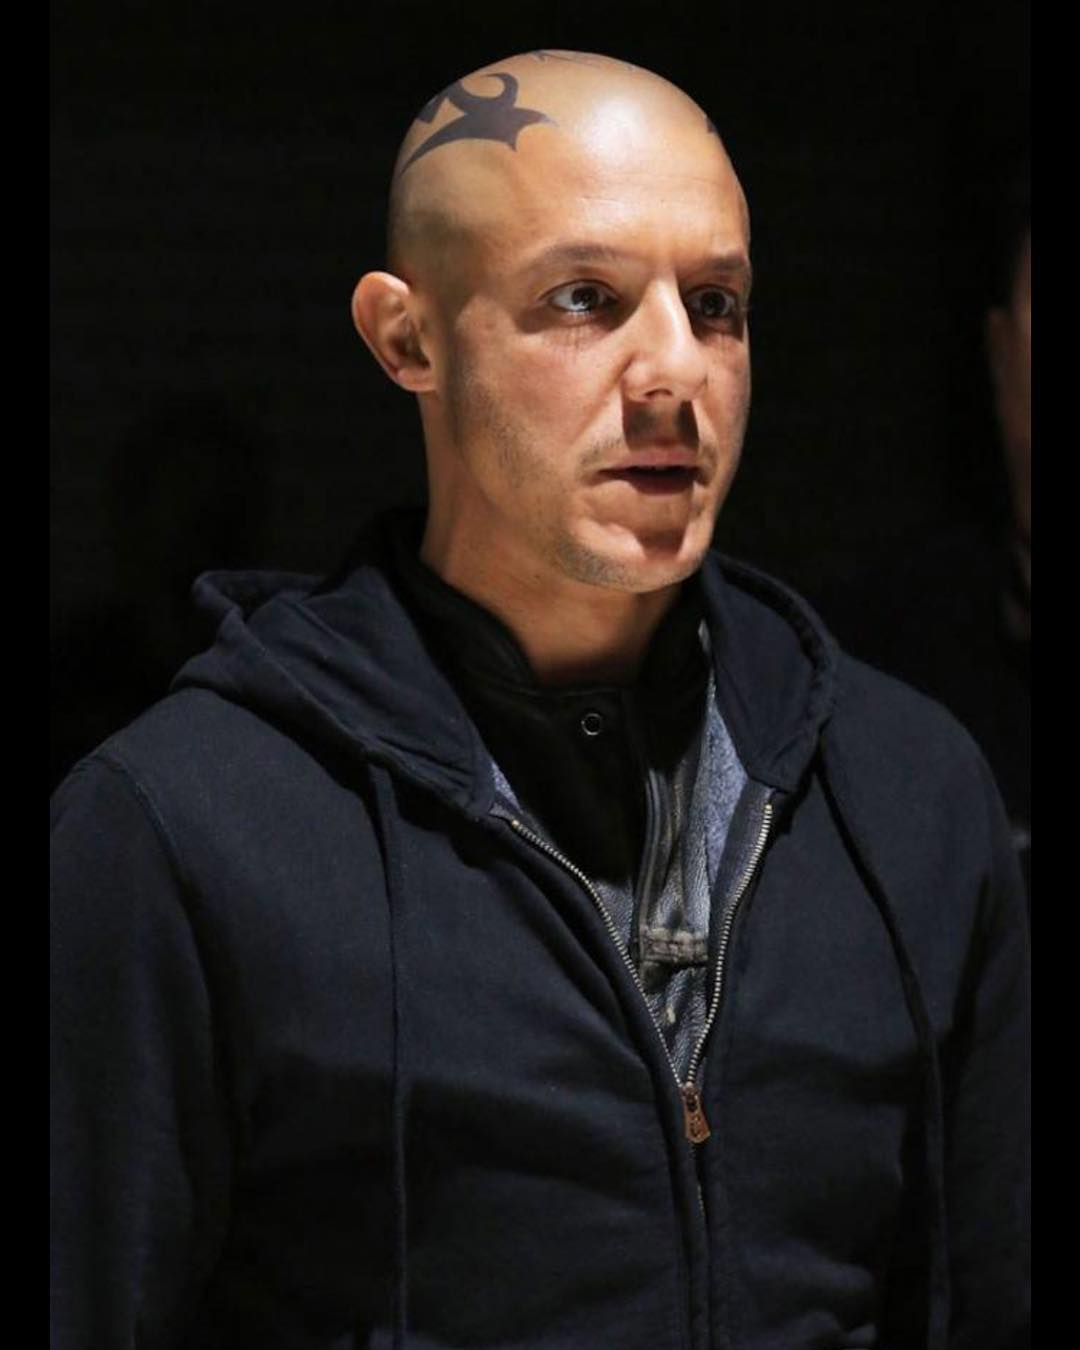 Theo Rossi as Juice Oritz in the hit series, Sons of Anarchy